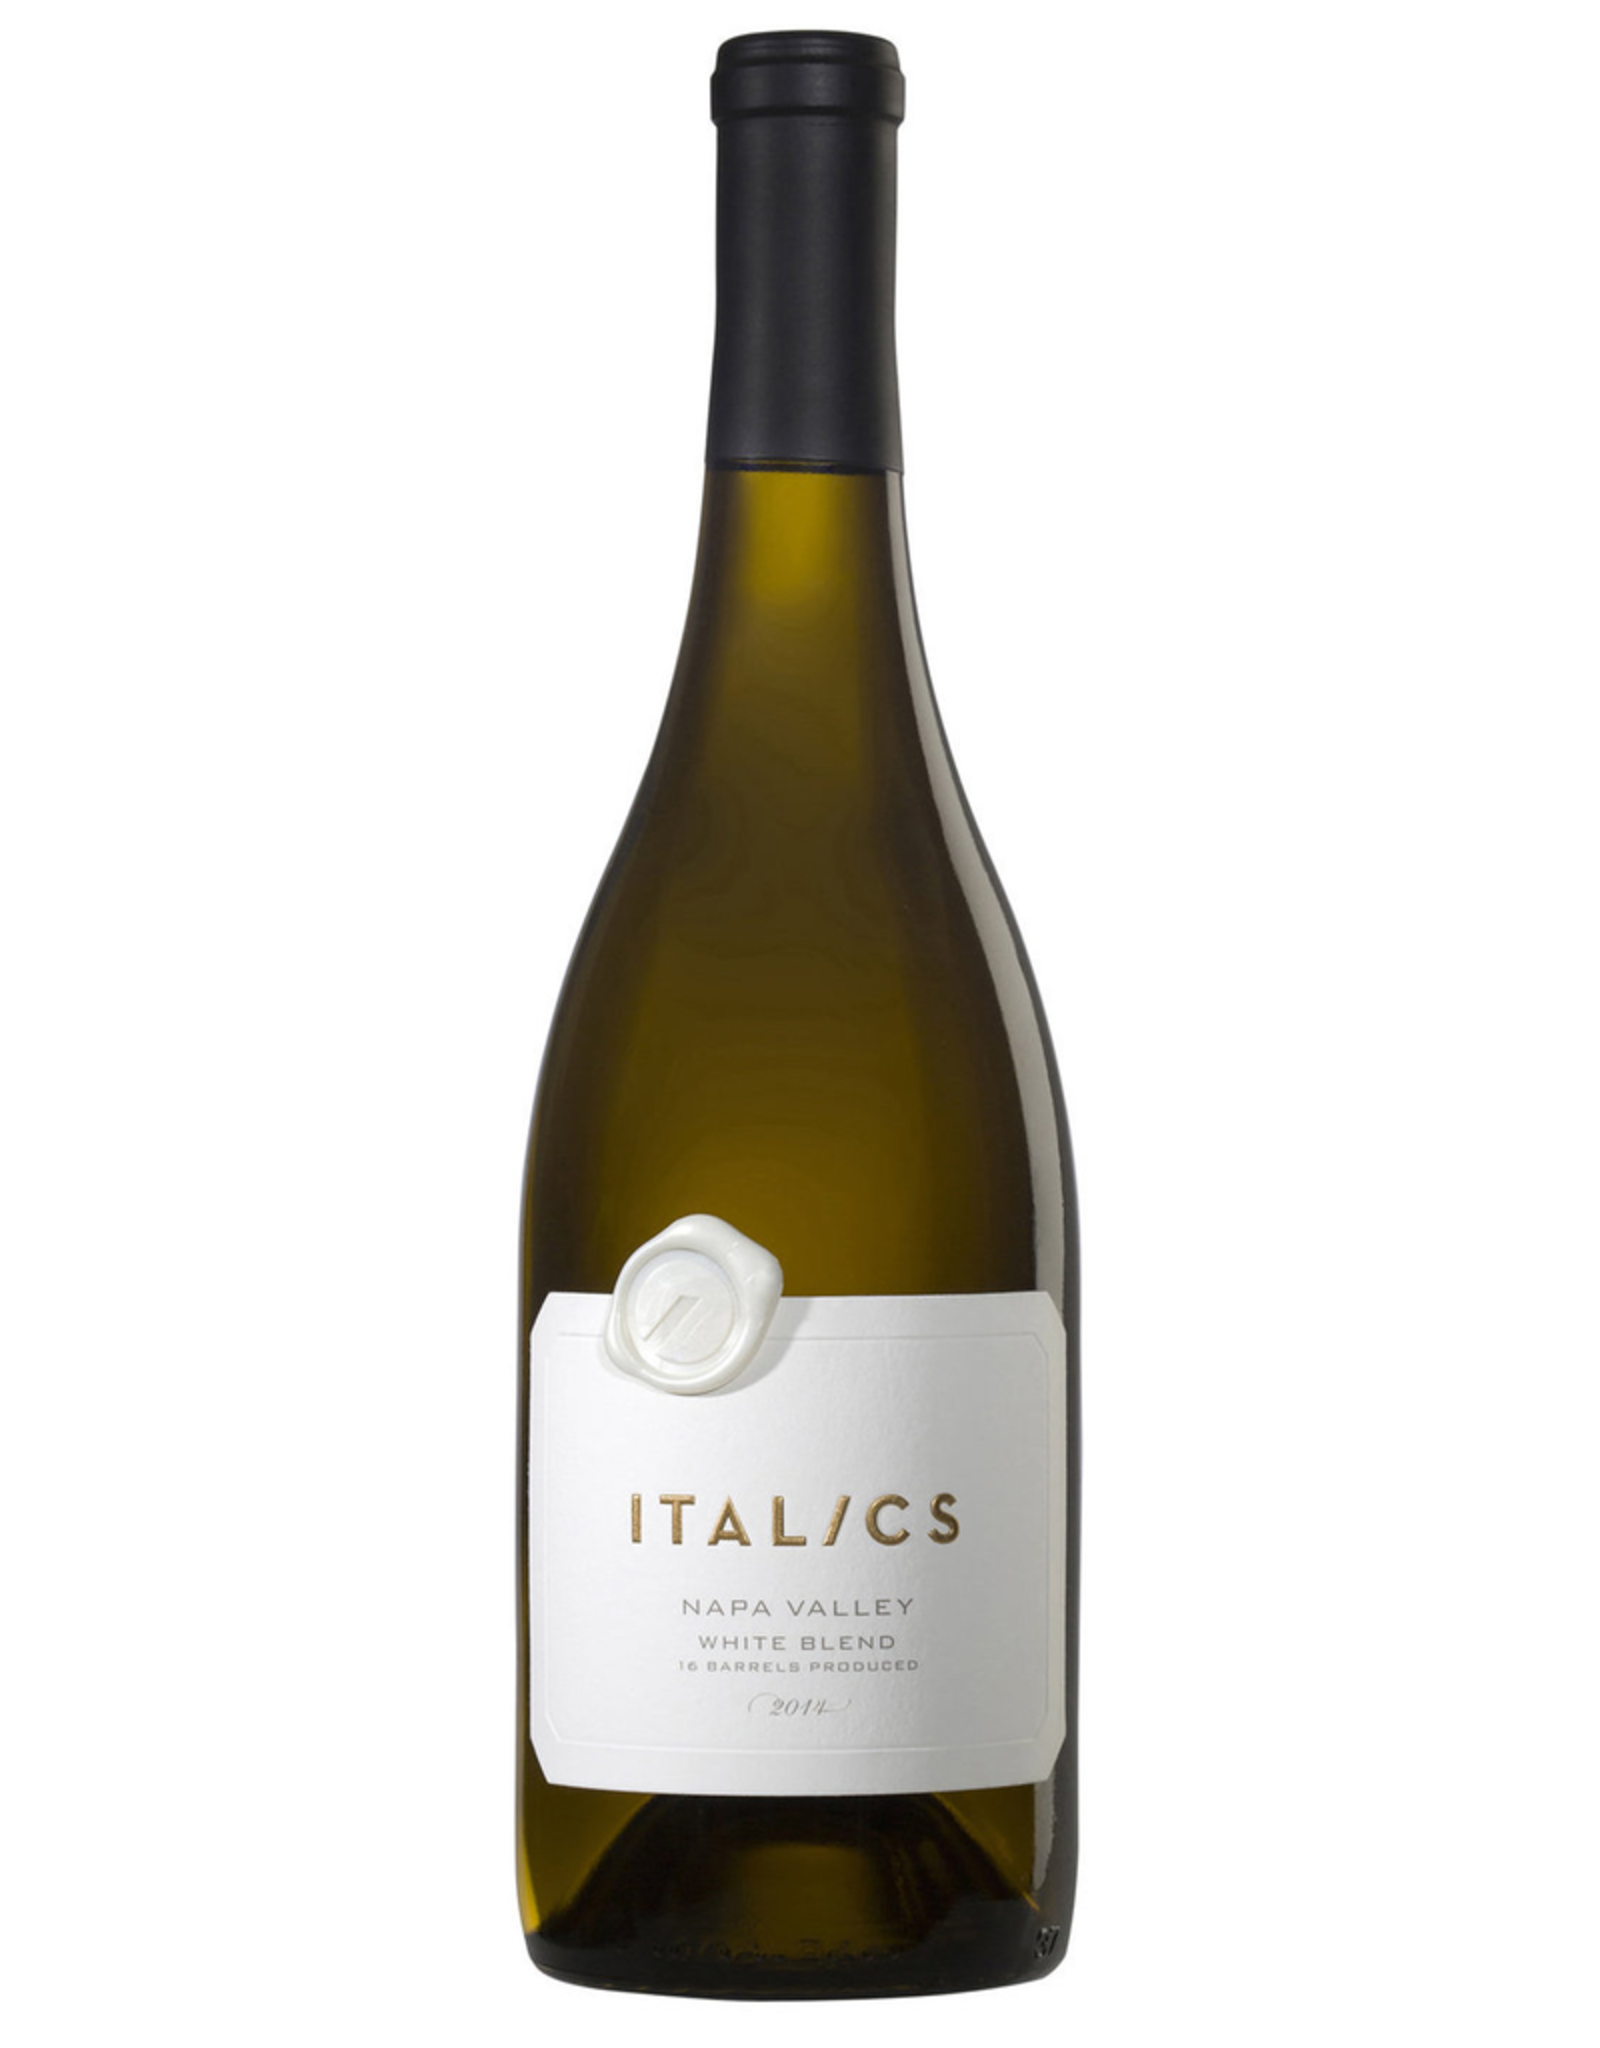 White Wine 2014, Italics 16 Barrel Rare White Blend, 47% Chardonnay 46% Sauvignon Blanc 7% Viognier, Multi-AVA, Napa Valley, California, 14.5% Alc, CT